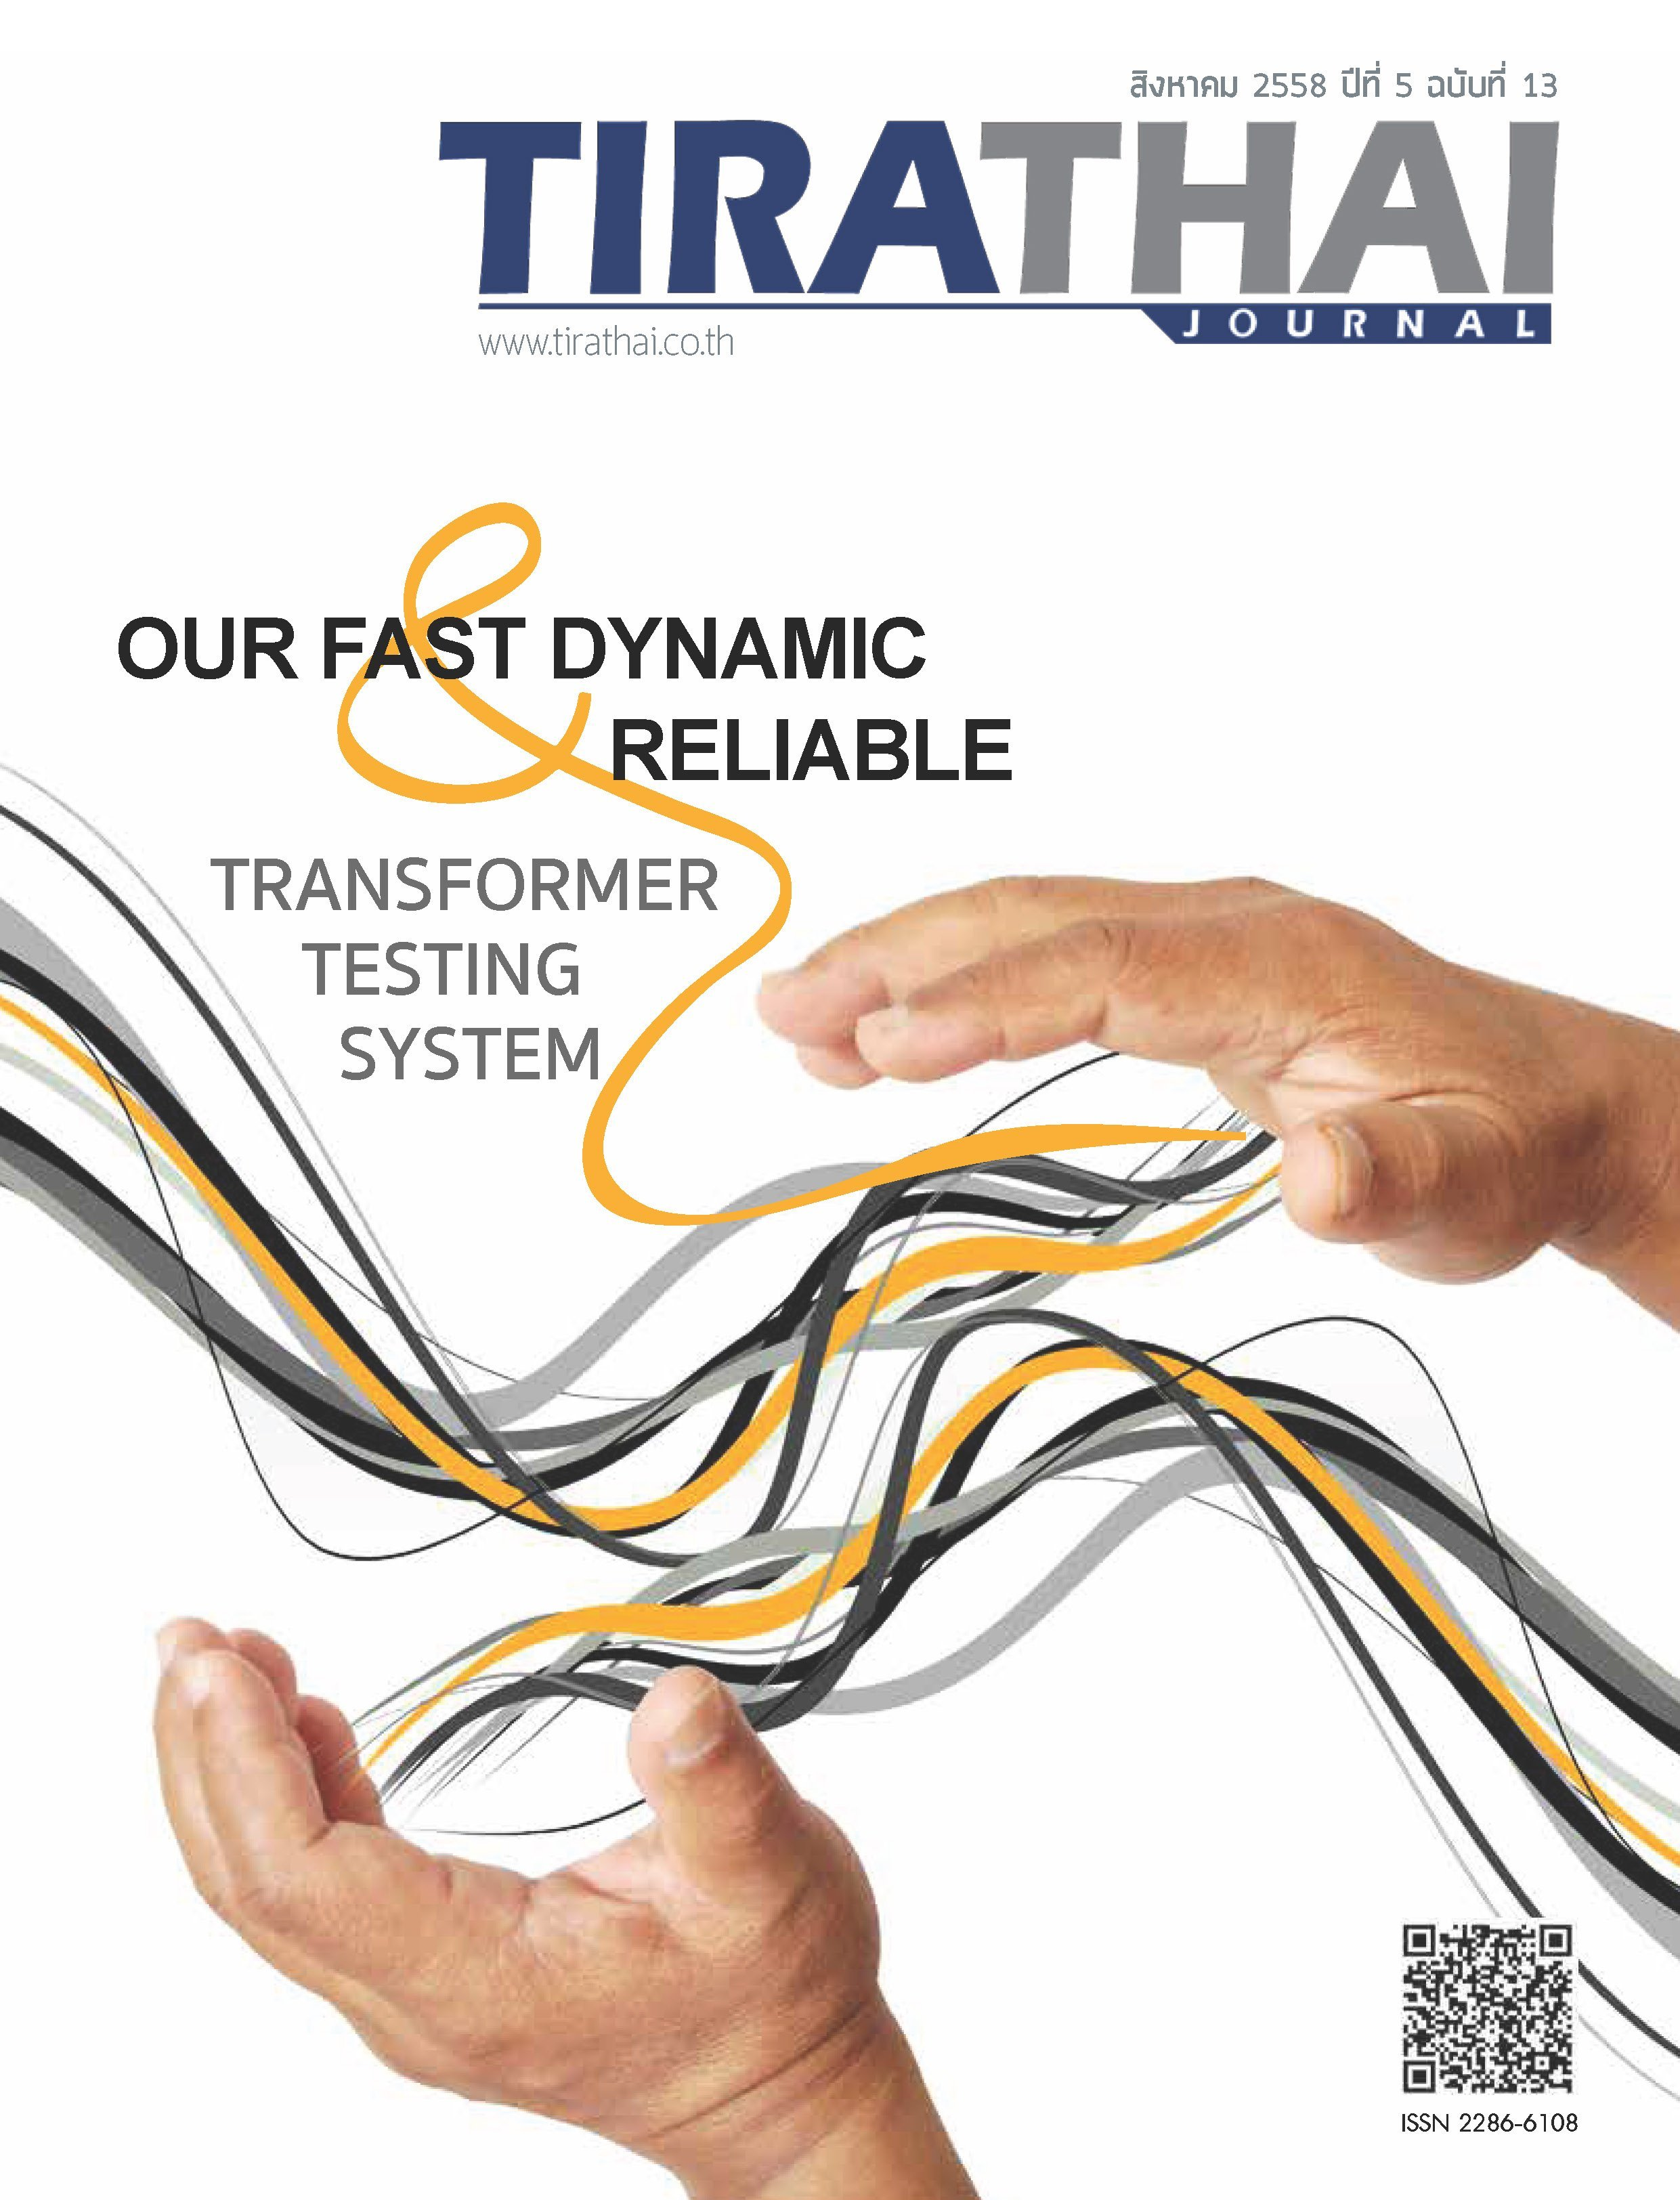 OUR FAST DYNAMIC & RELIABLE TRANSFORMER TESTING SYSTEM